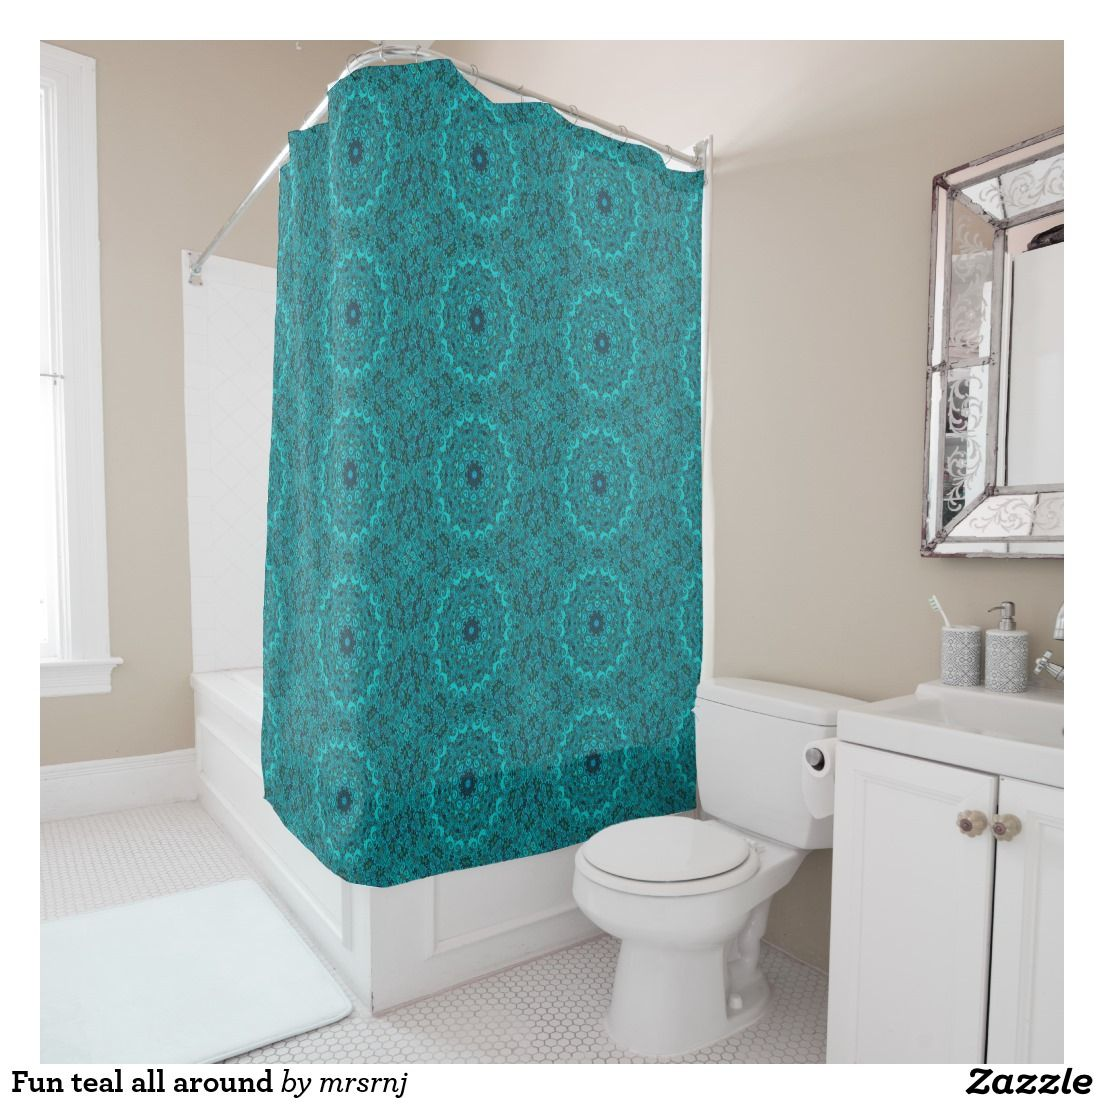 Fun Teal All Around Shower Curtain Zazzle Com Stylish Shower